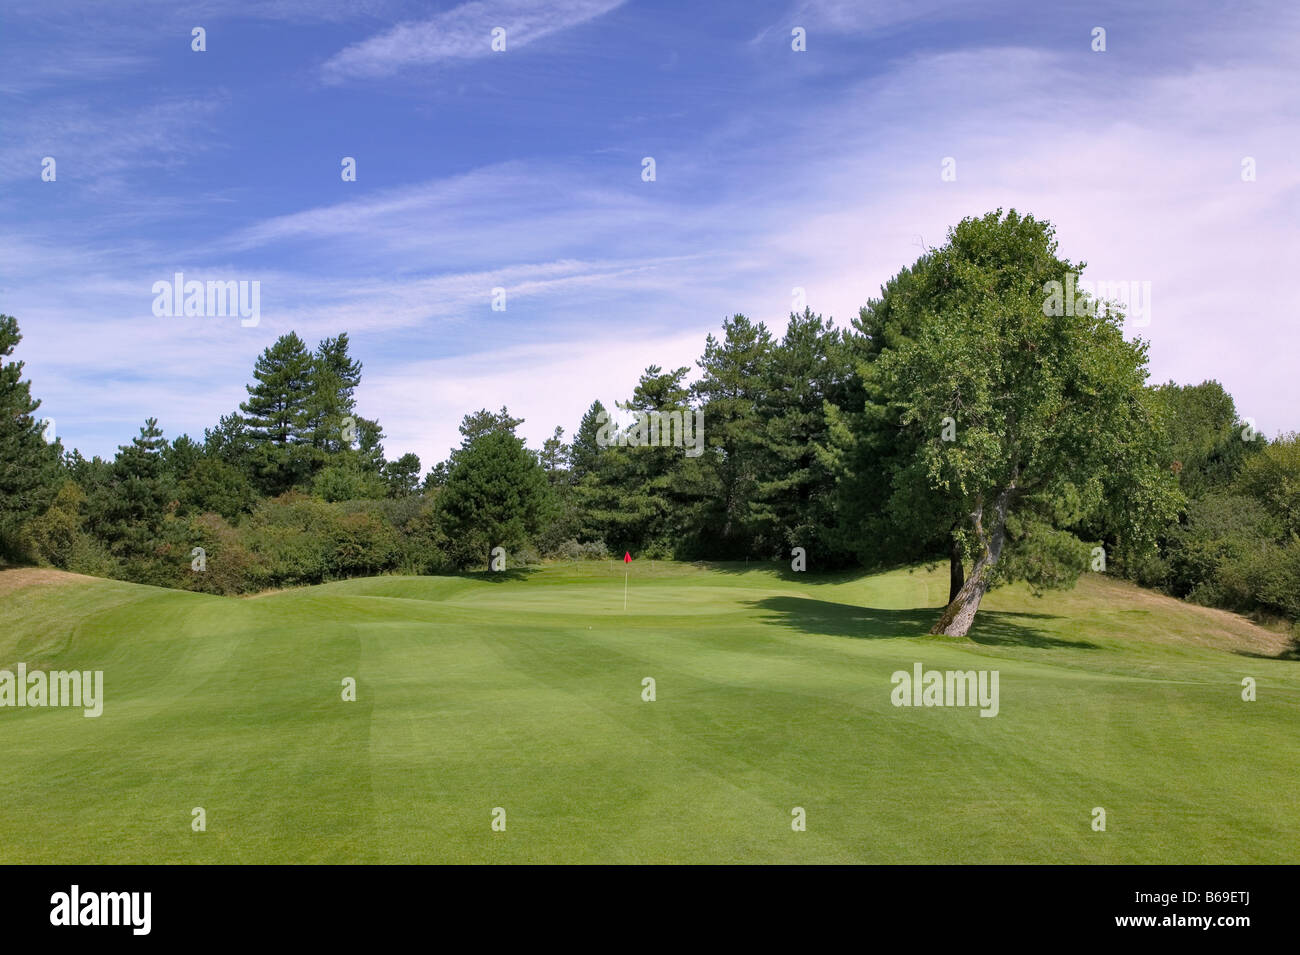 View from the fairway approaching the green with a red flag on a well maintained golf course - Stock Image